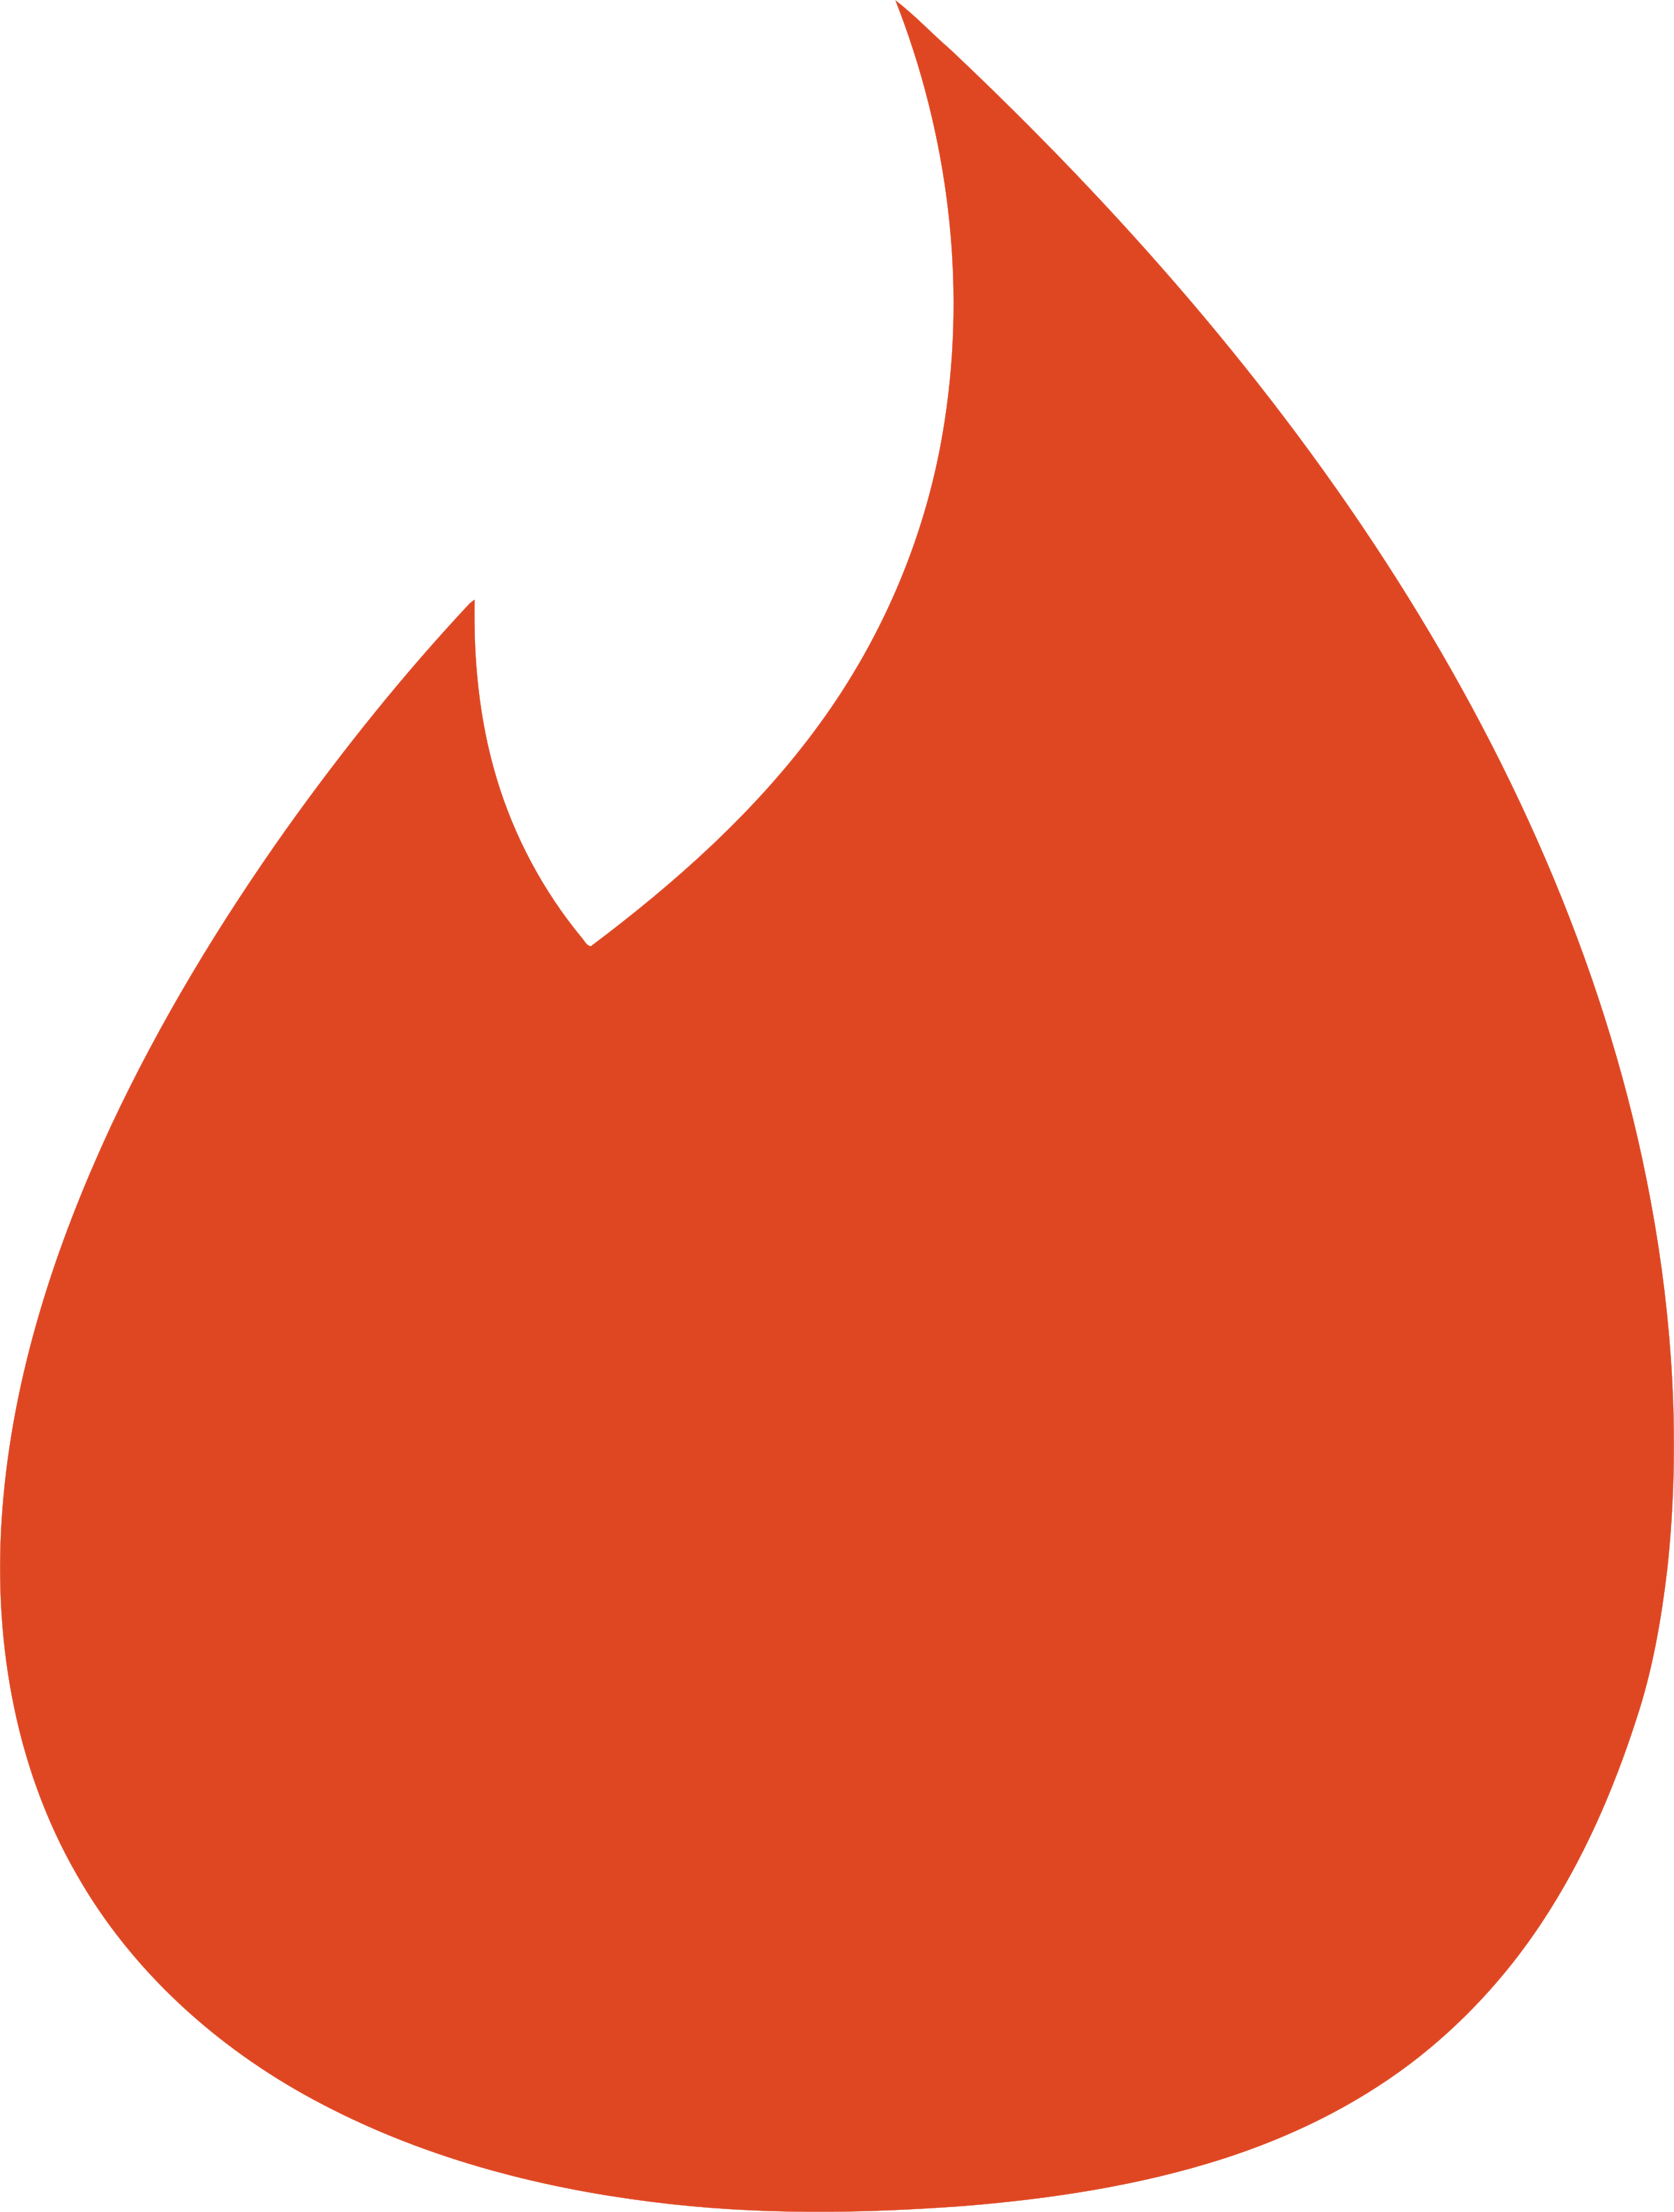 Tinder icon Logo PNG Transparent & SVG Vector.